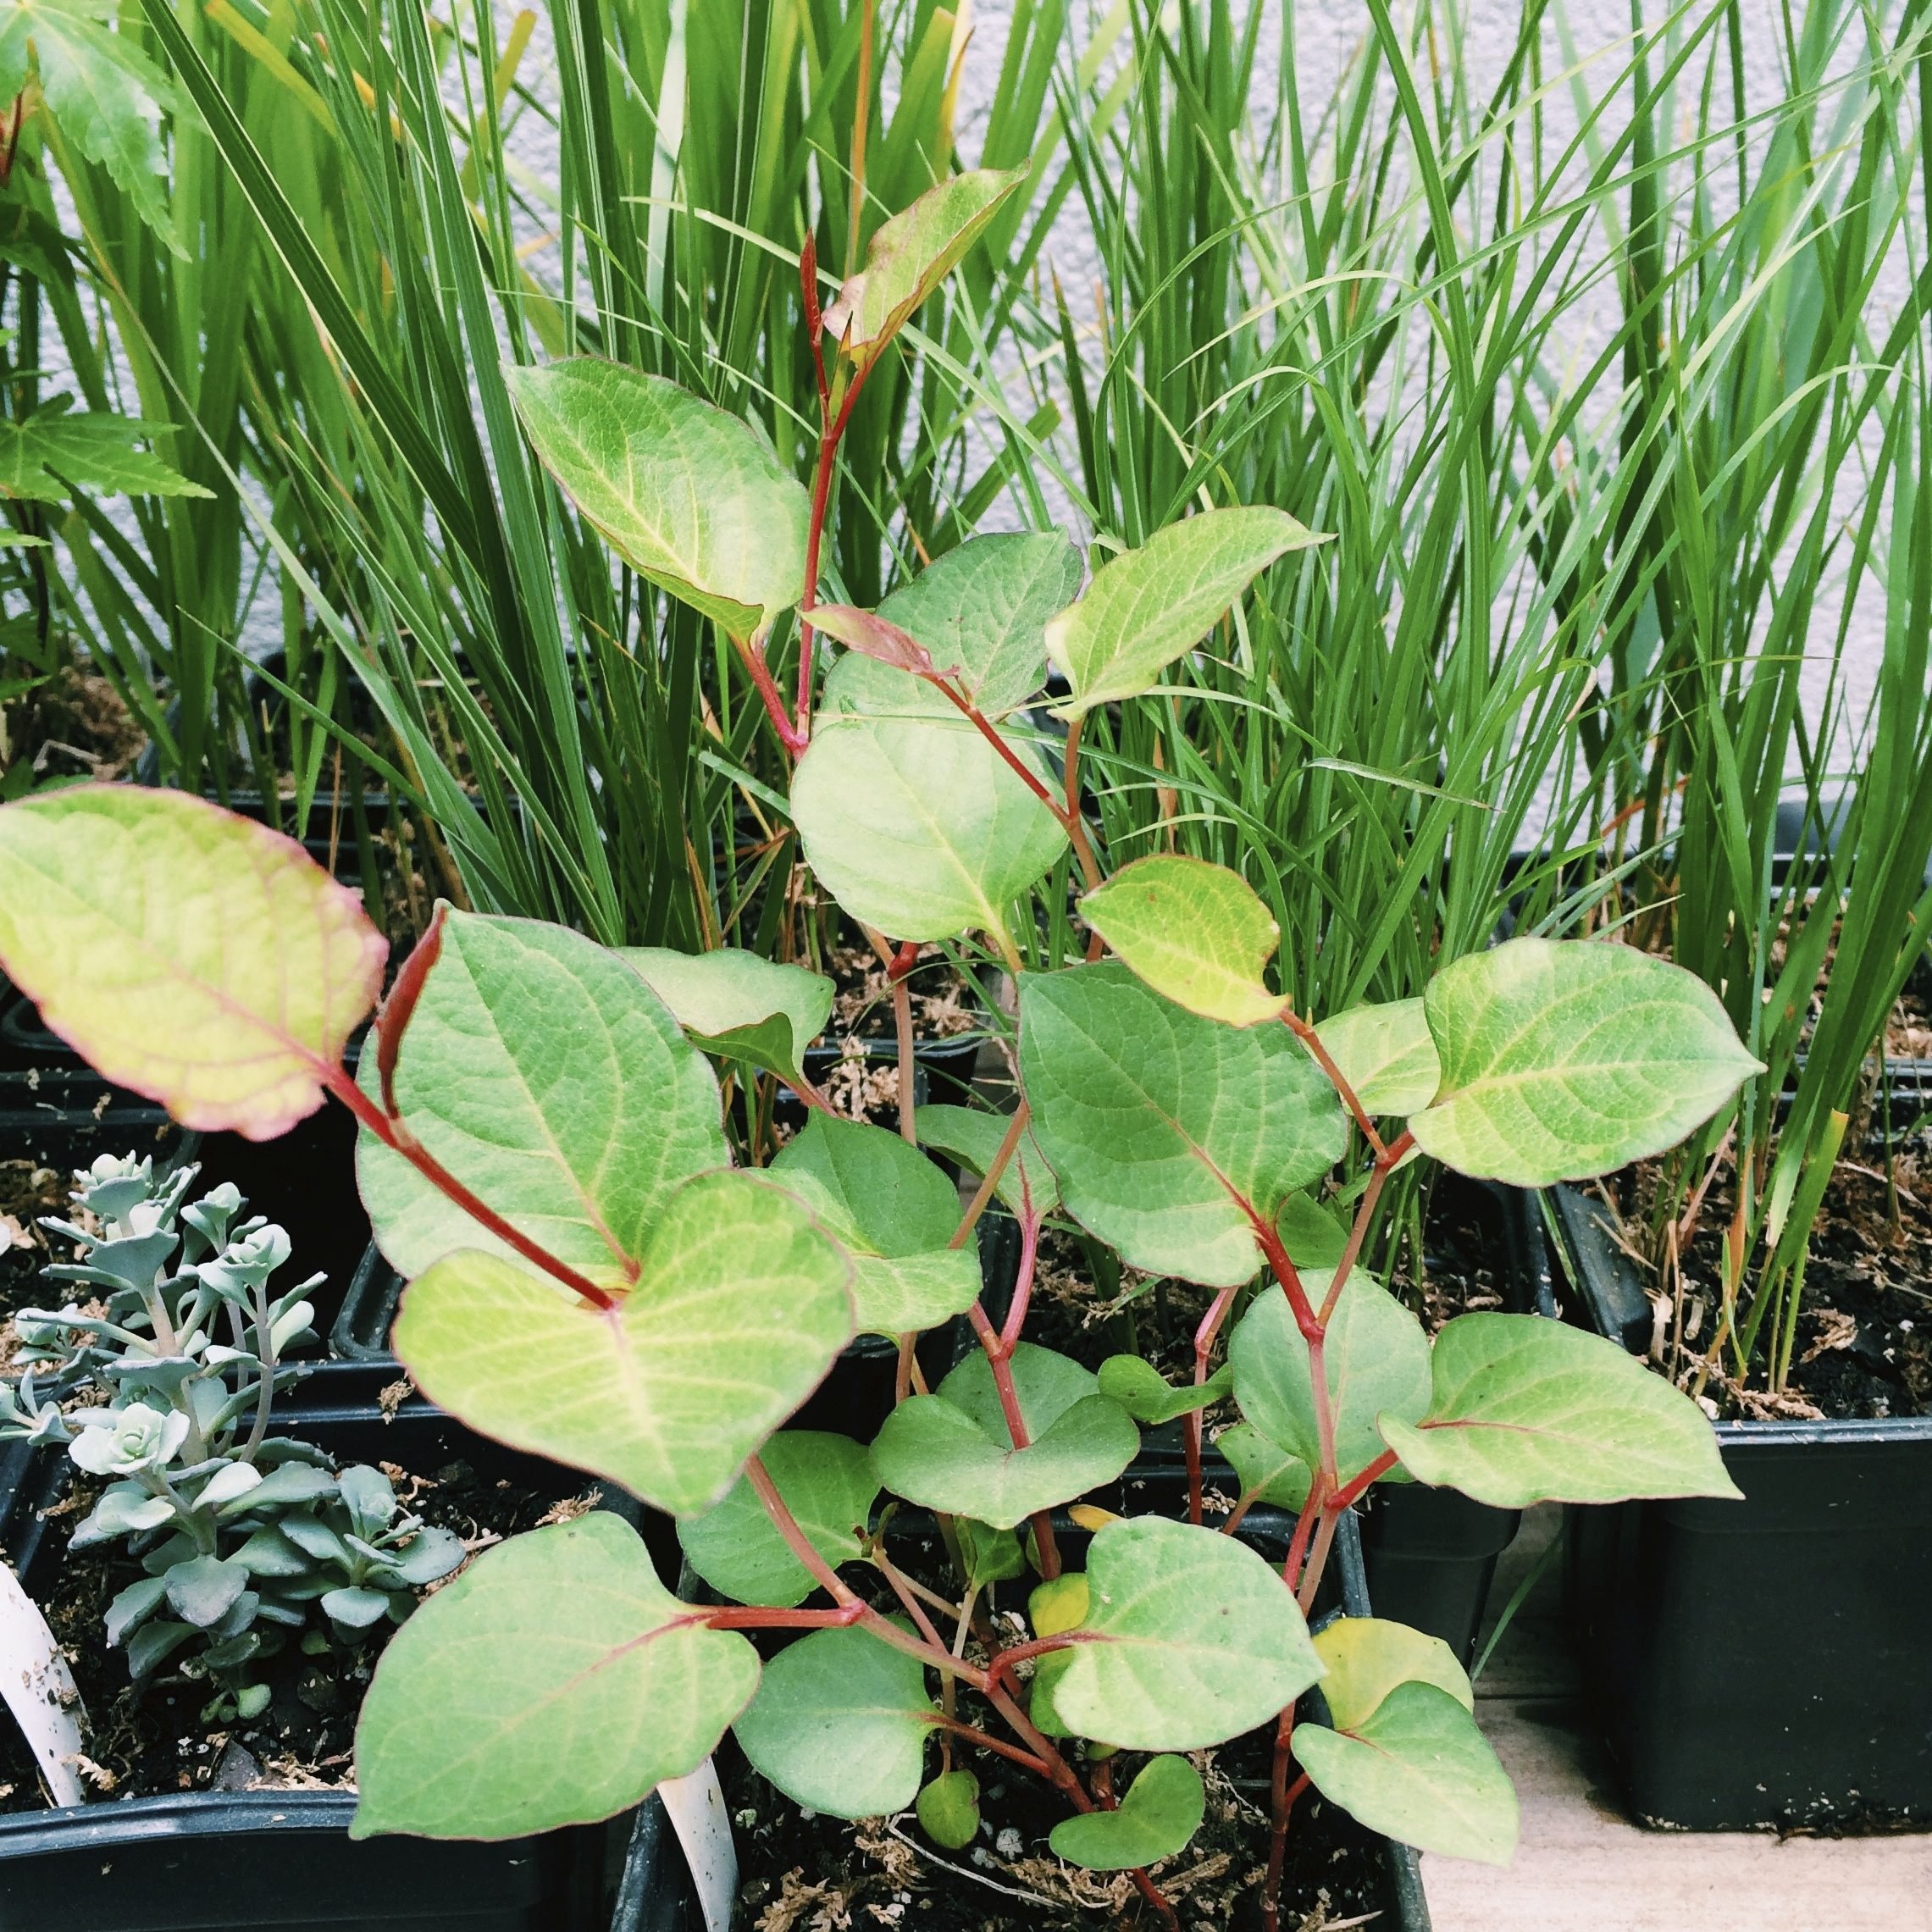 the dwarf japanese knotweed will have clusters of pink flowers in the summer.